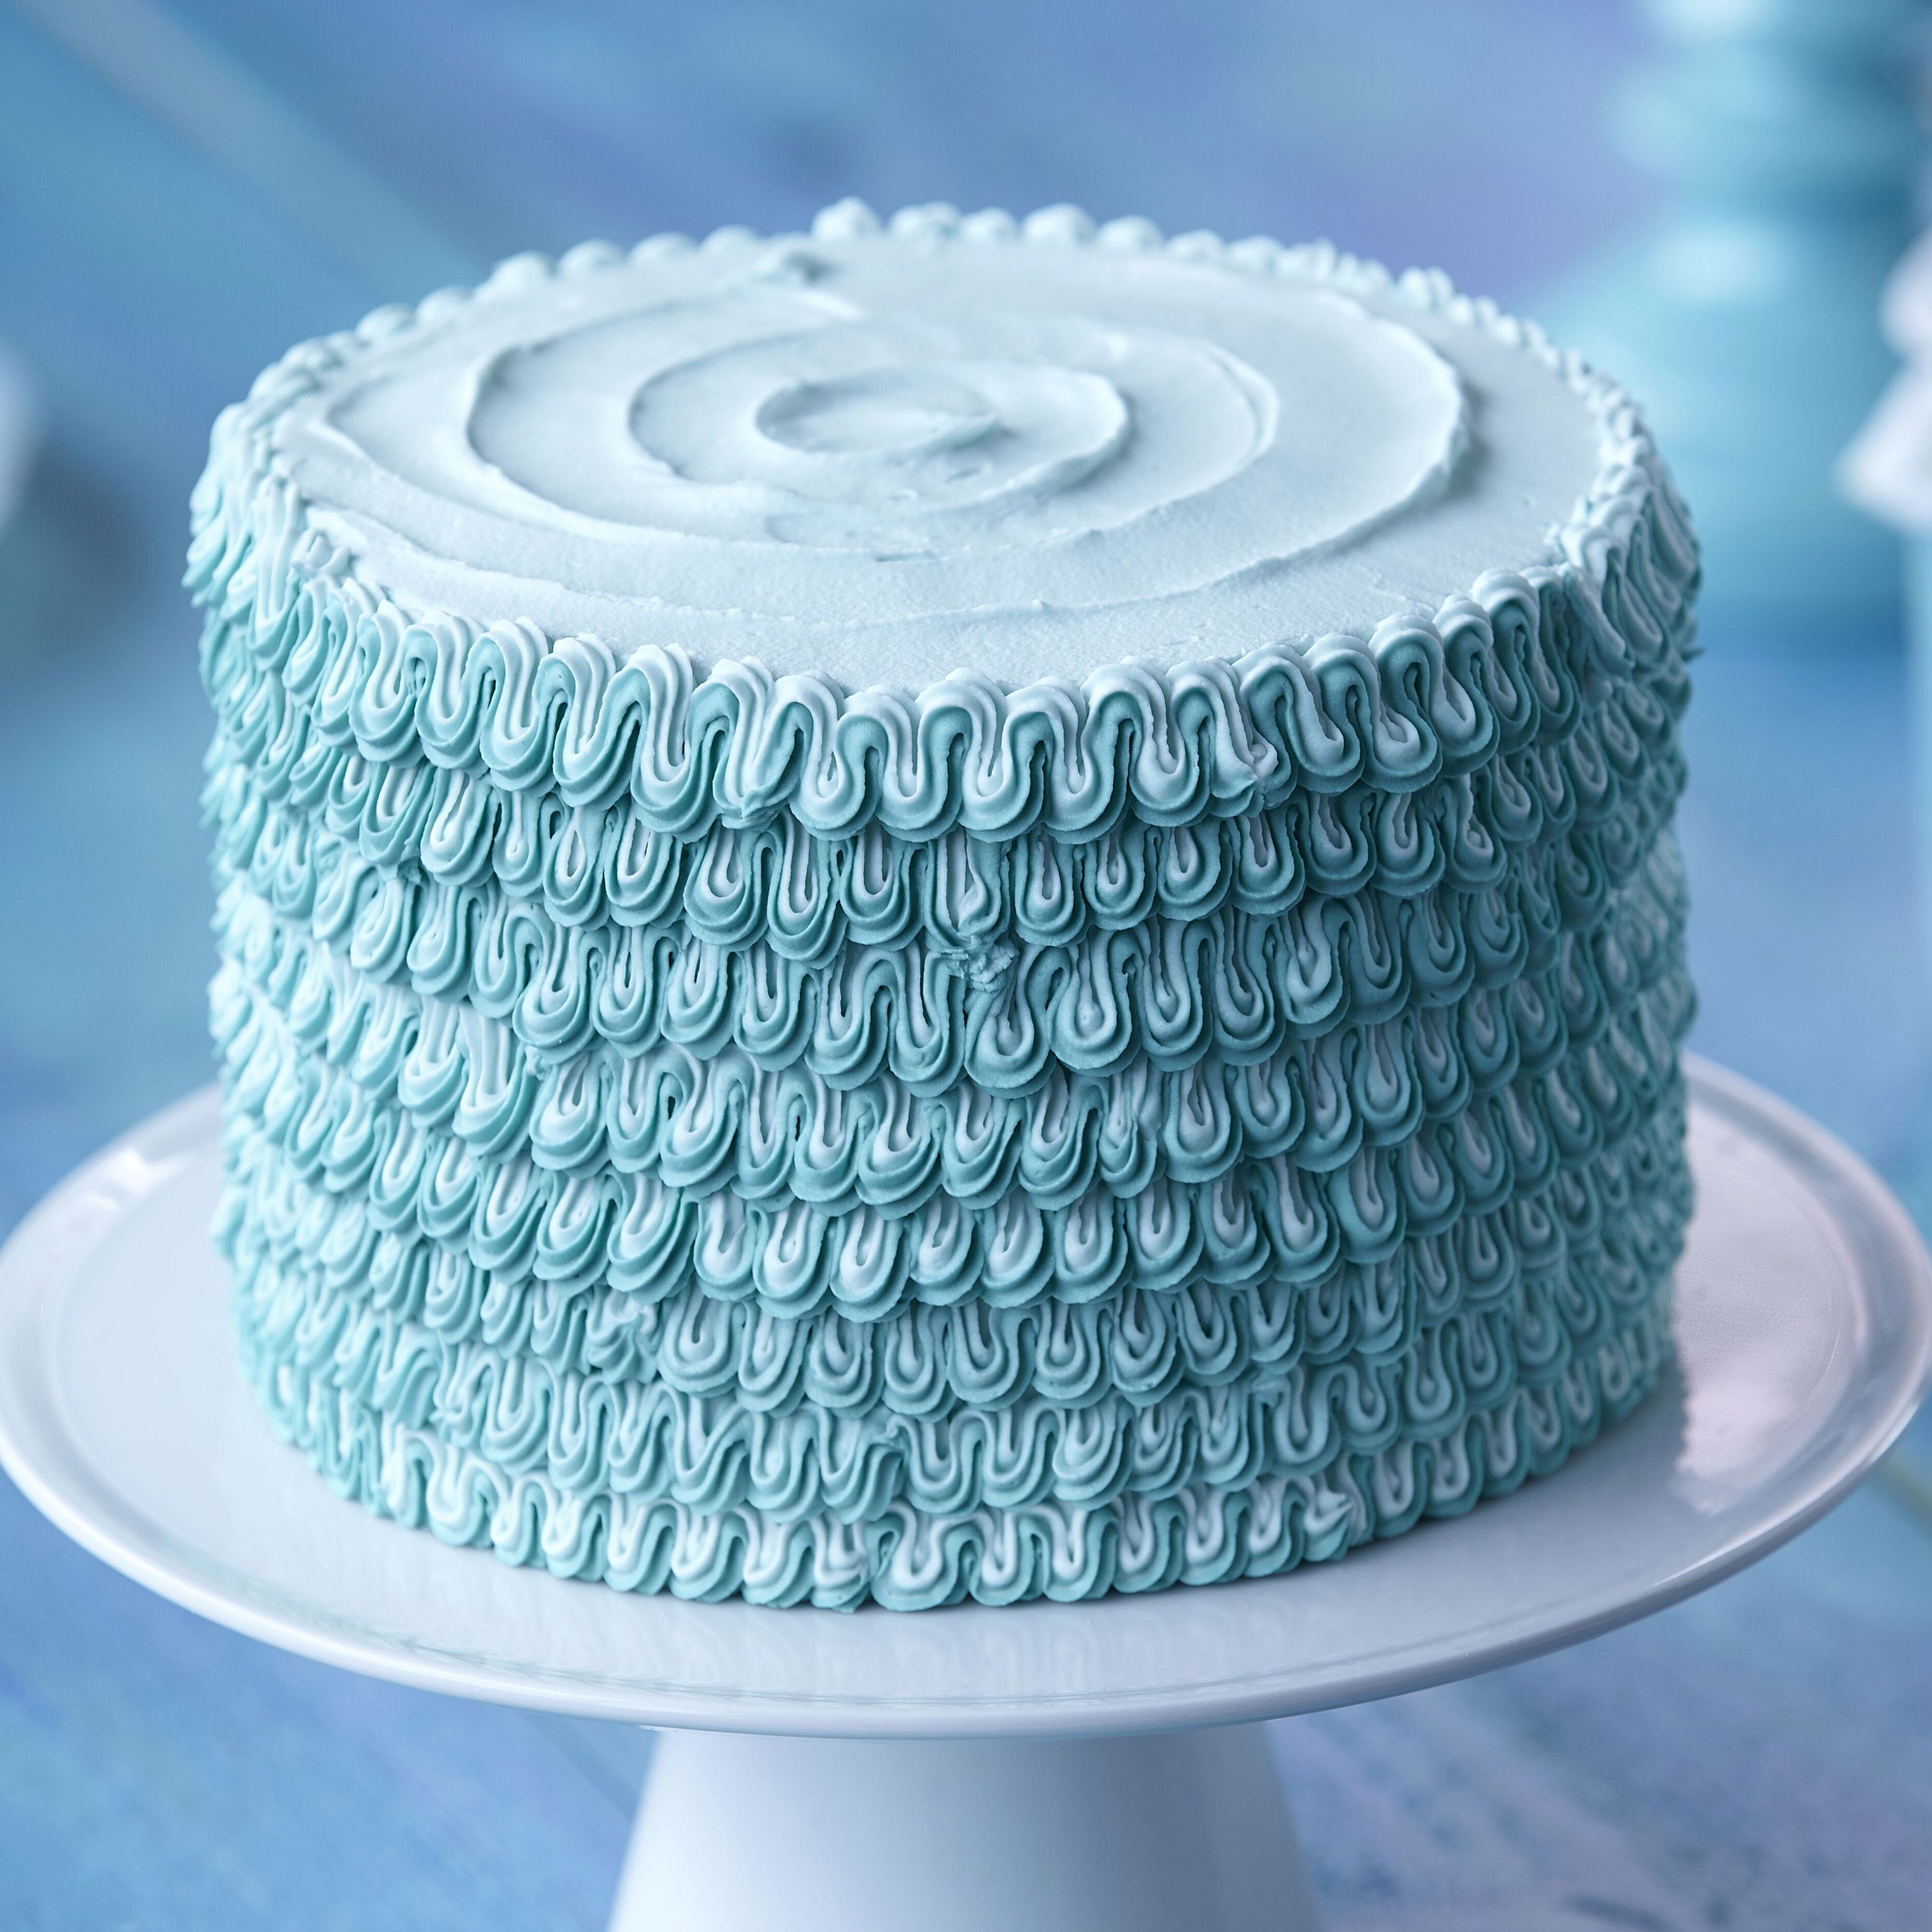 The Wilton Method of Cake Decorating Course 1 Building Buttercream